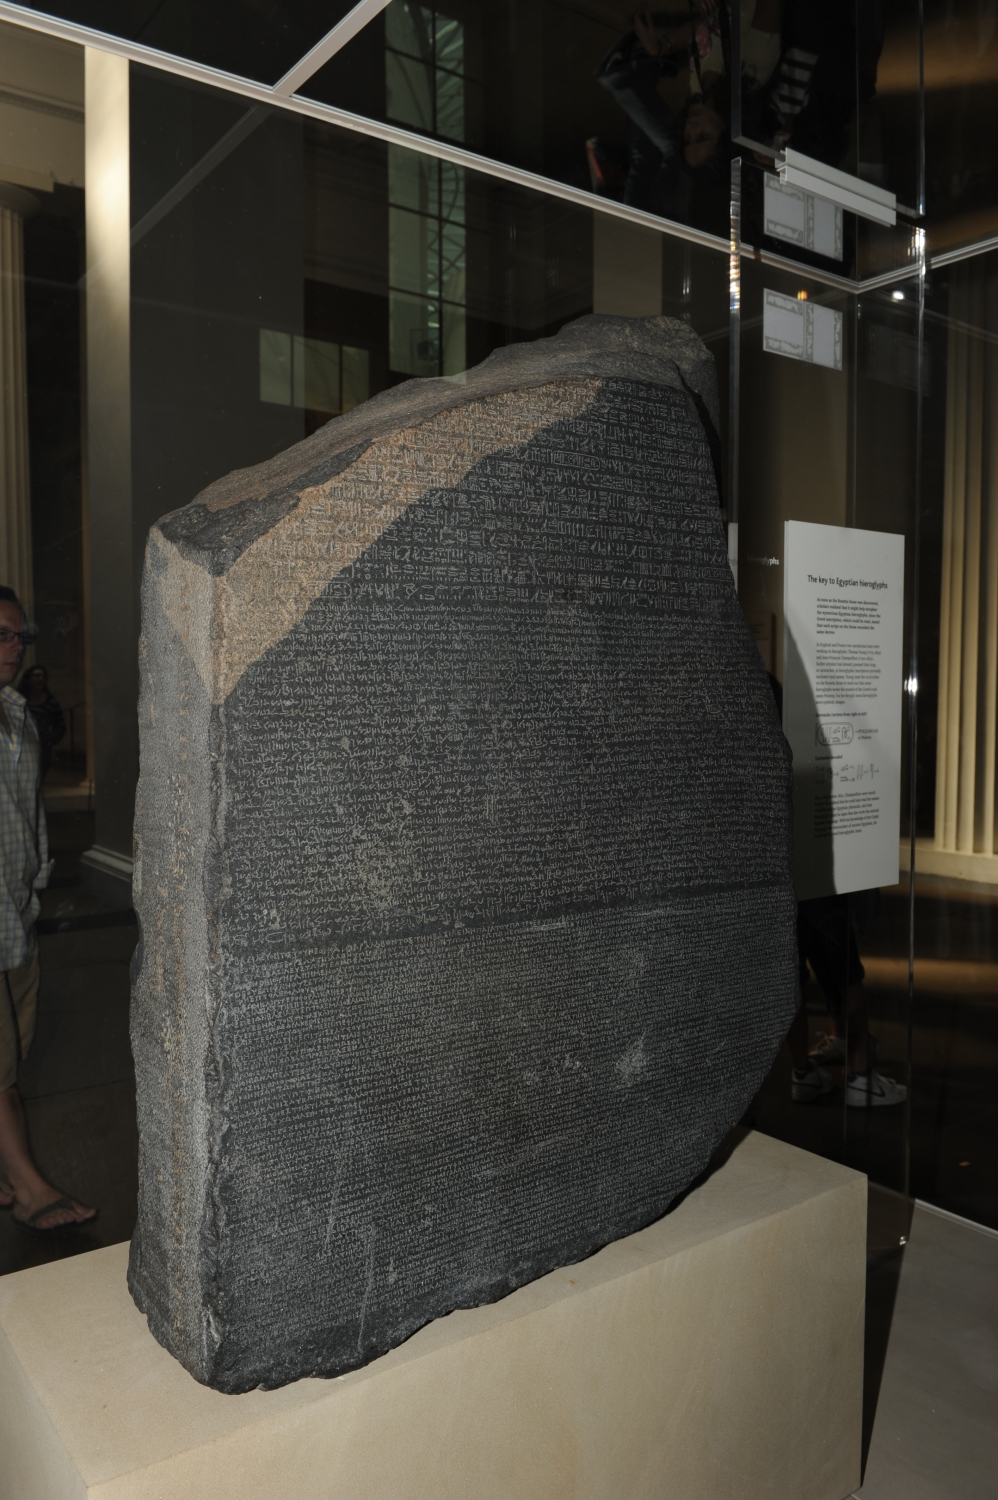 Pedra de Rosetta - British Museum - London